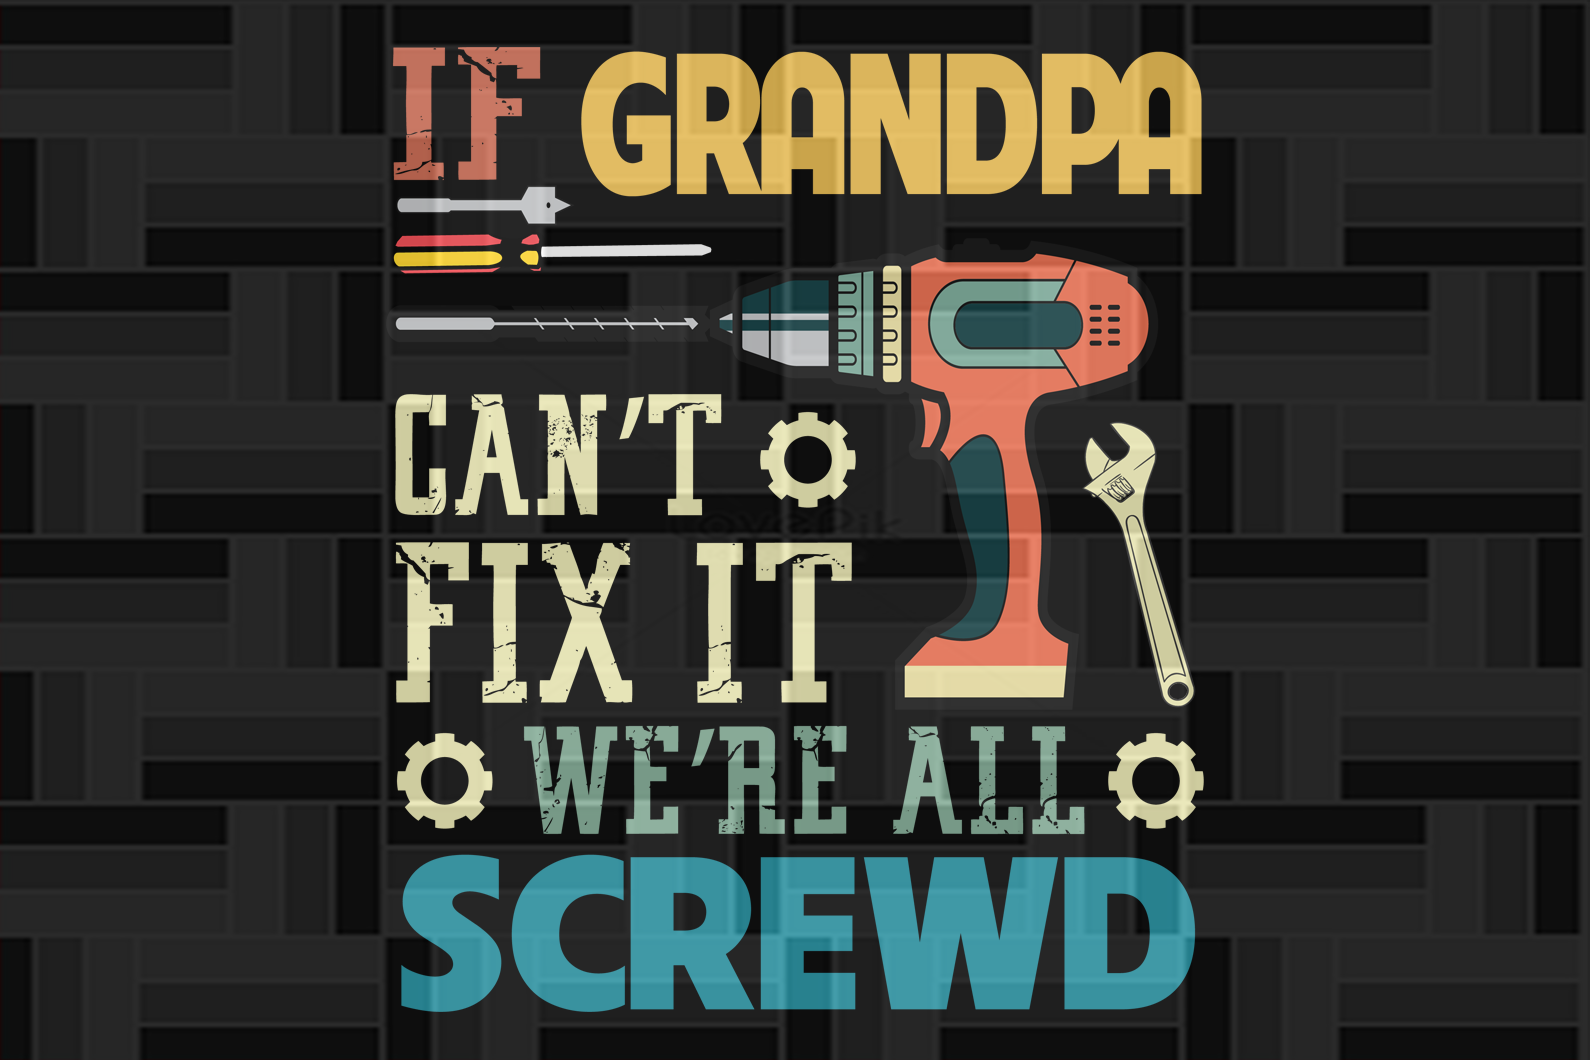 If grandpa can't fix t,fathers day svg, fathers day gift, papa gift, gift for papa, papa gift, mechanic gift,shirt for man,best dad gift svg, love papa,screwed svg, screwed gift for papa,papa birthday,funny dad